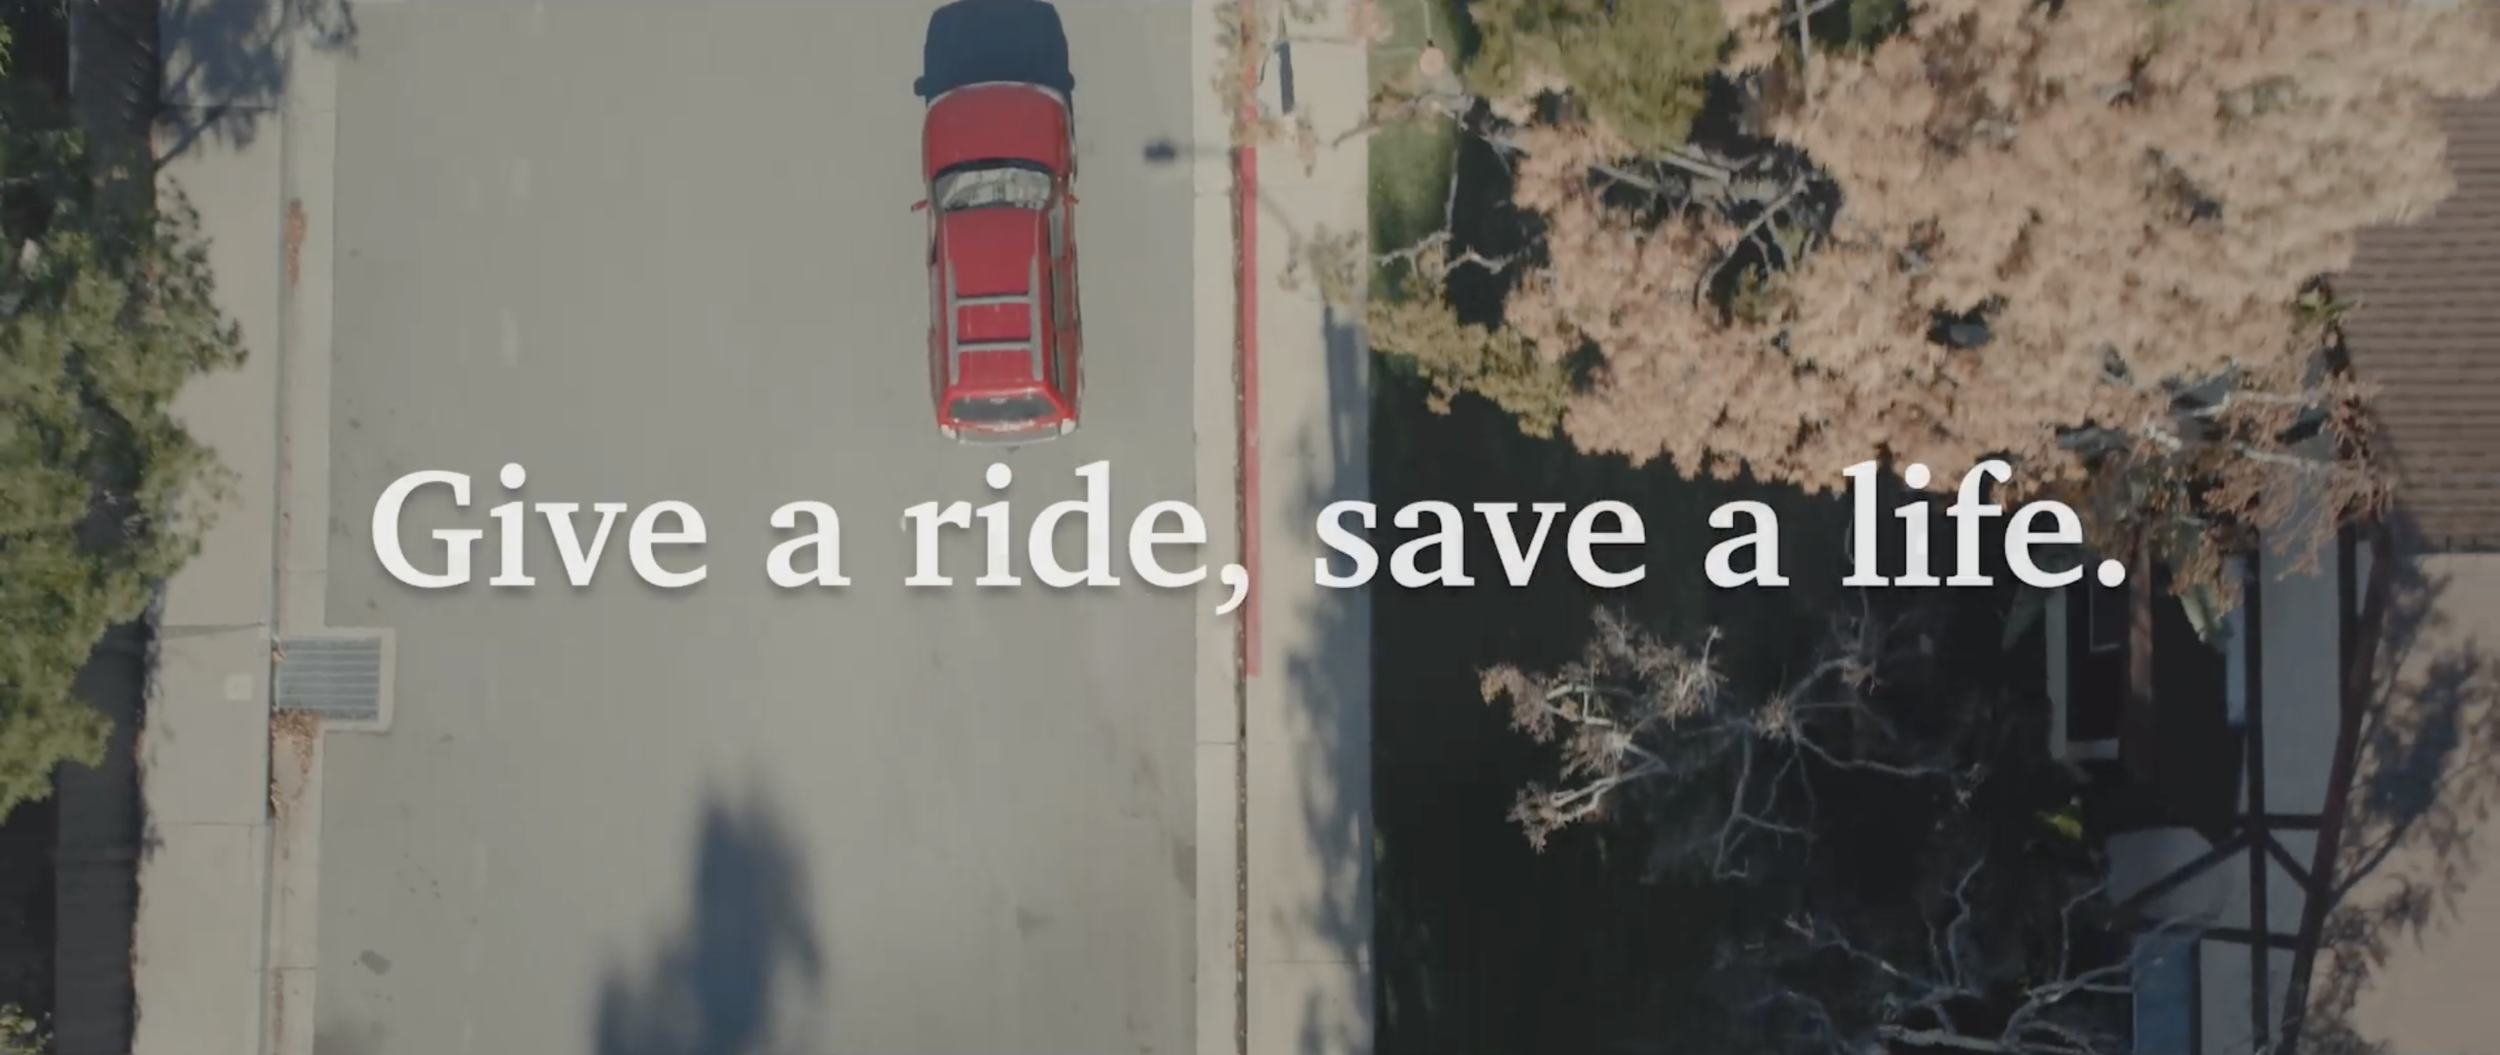 American cancer society - Developed video campaign for ACS's Road to Recovery program that helps patients seamlessly find transportation to their treatments.